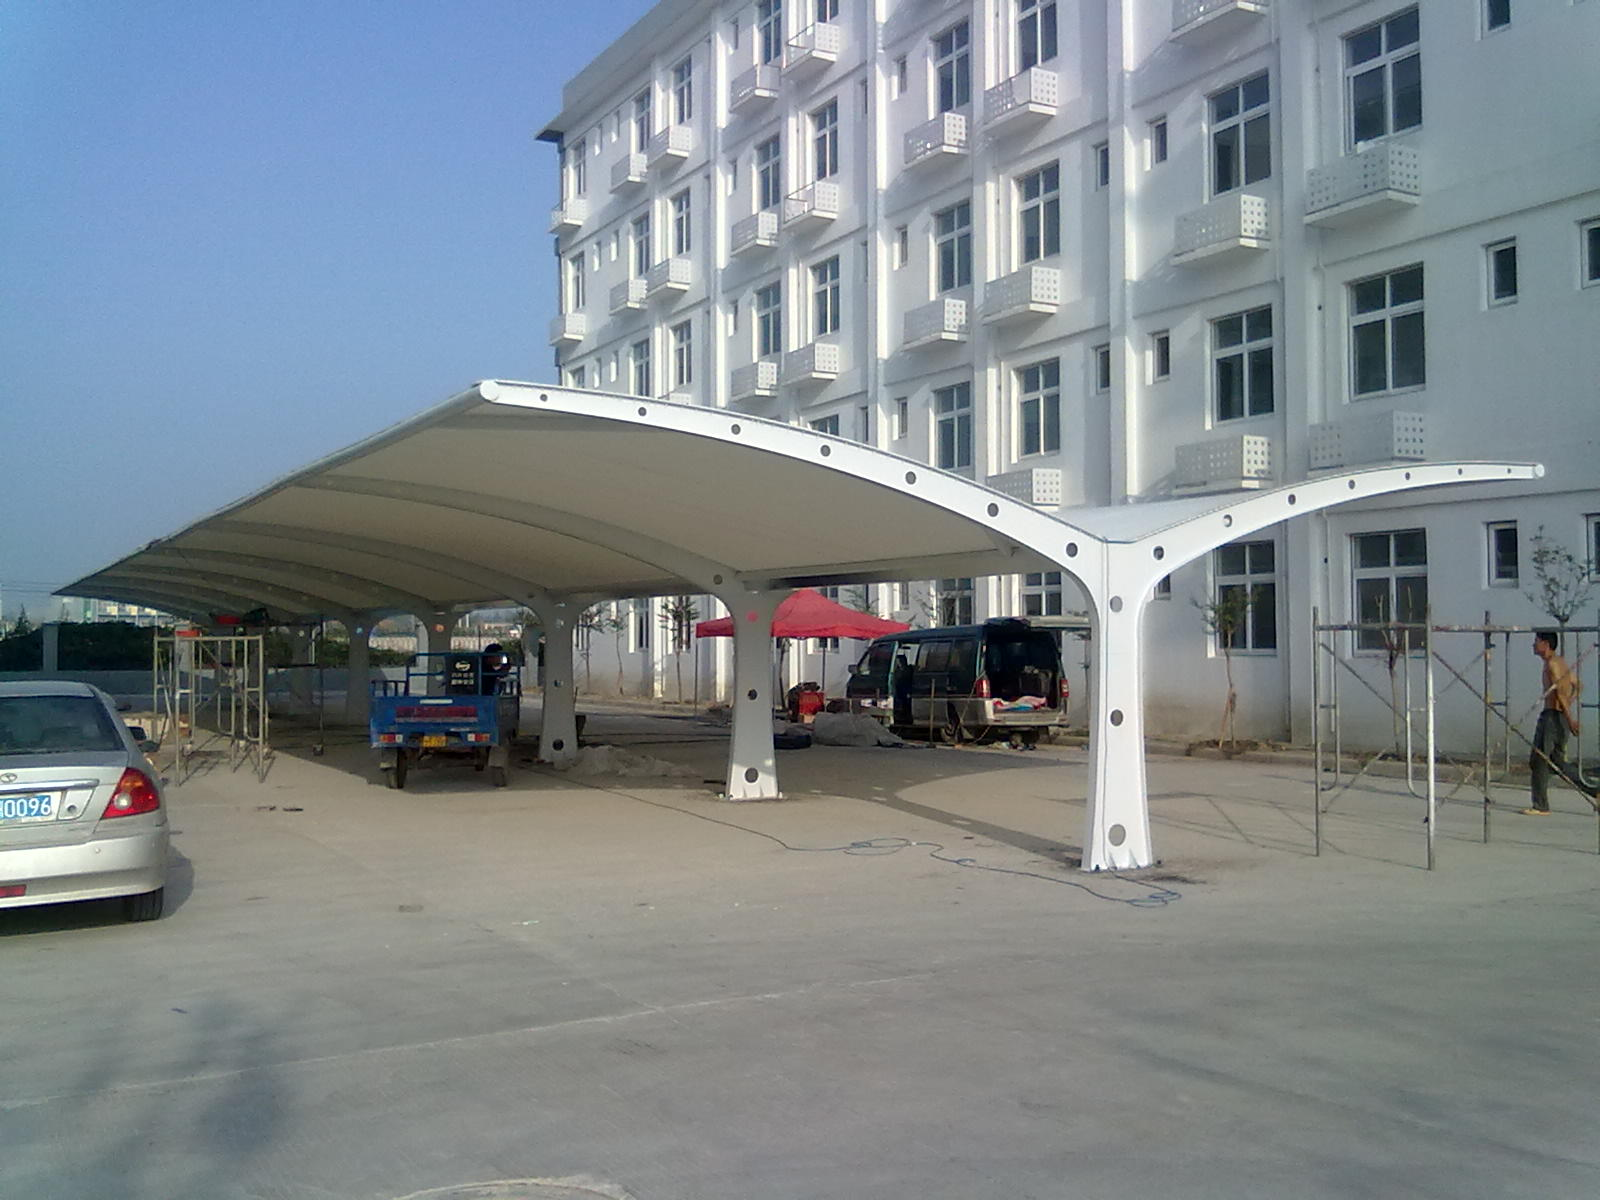 Compare Prices on Carport Awning- Online Shopping/Buy Low